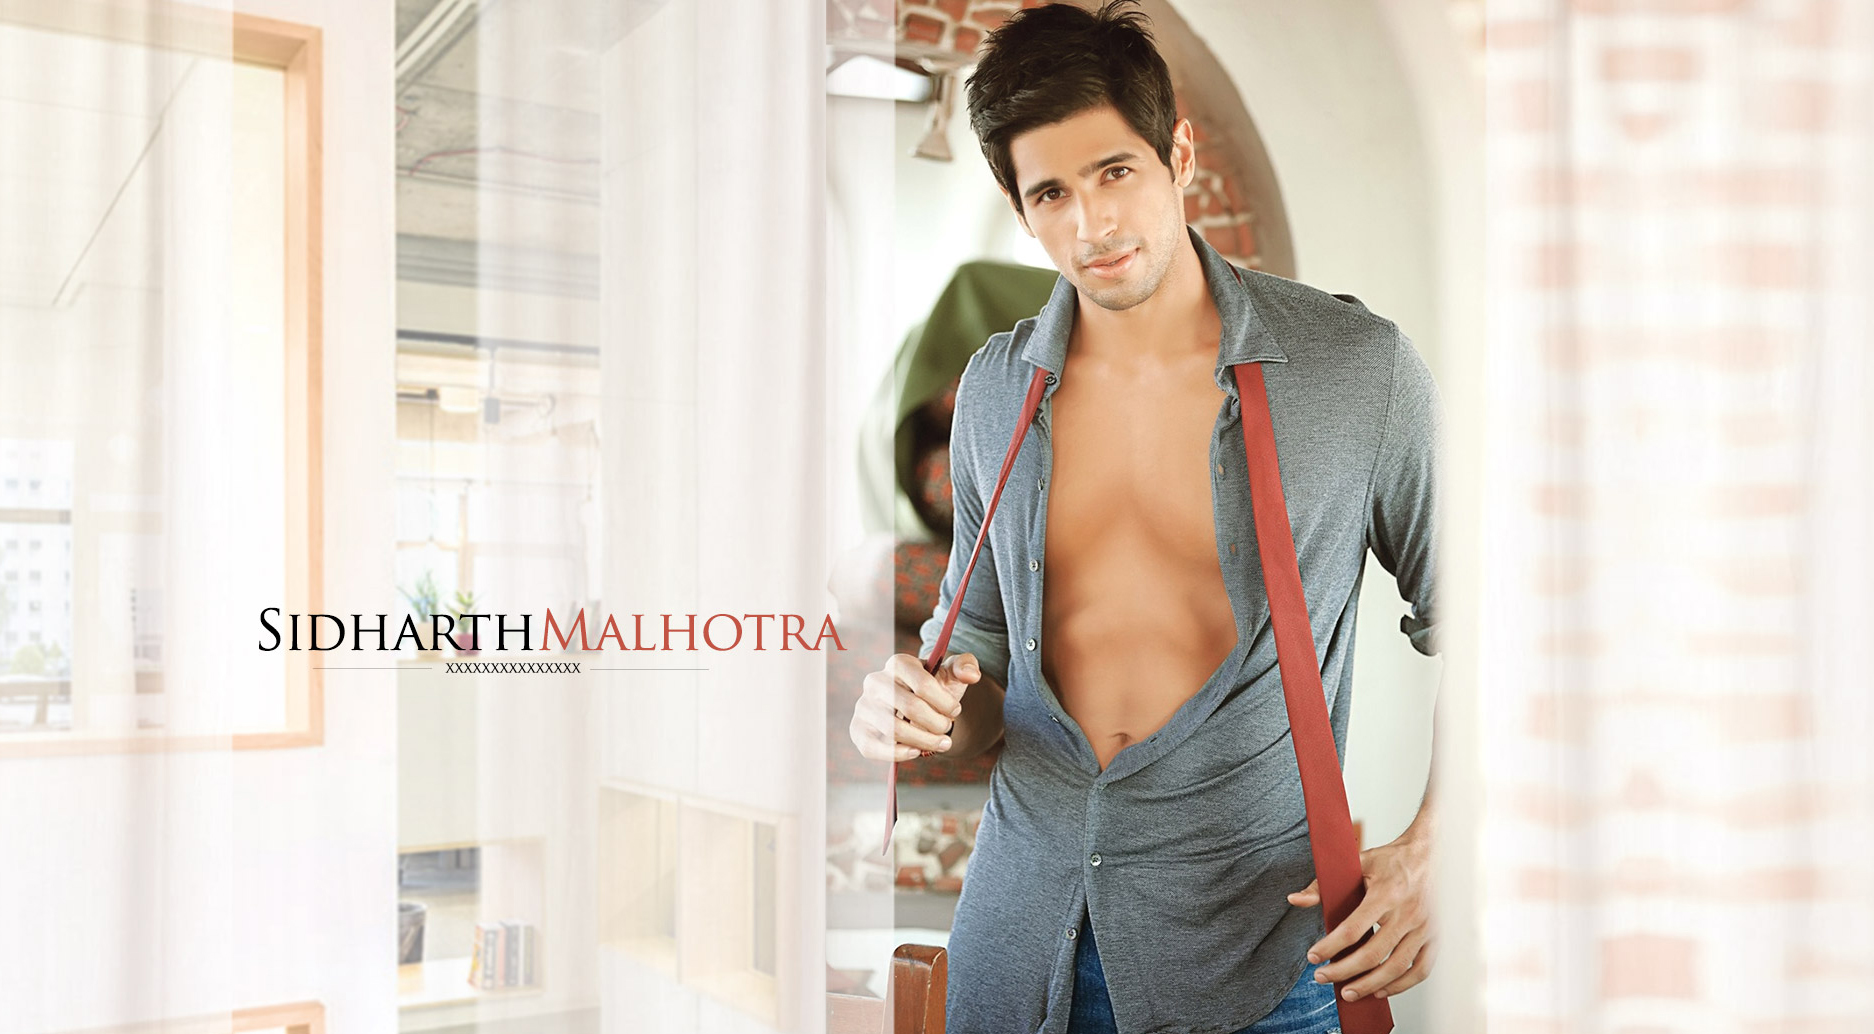 Sidharth Malhotra Images Download